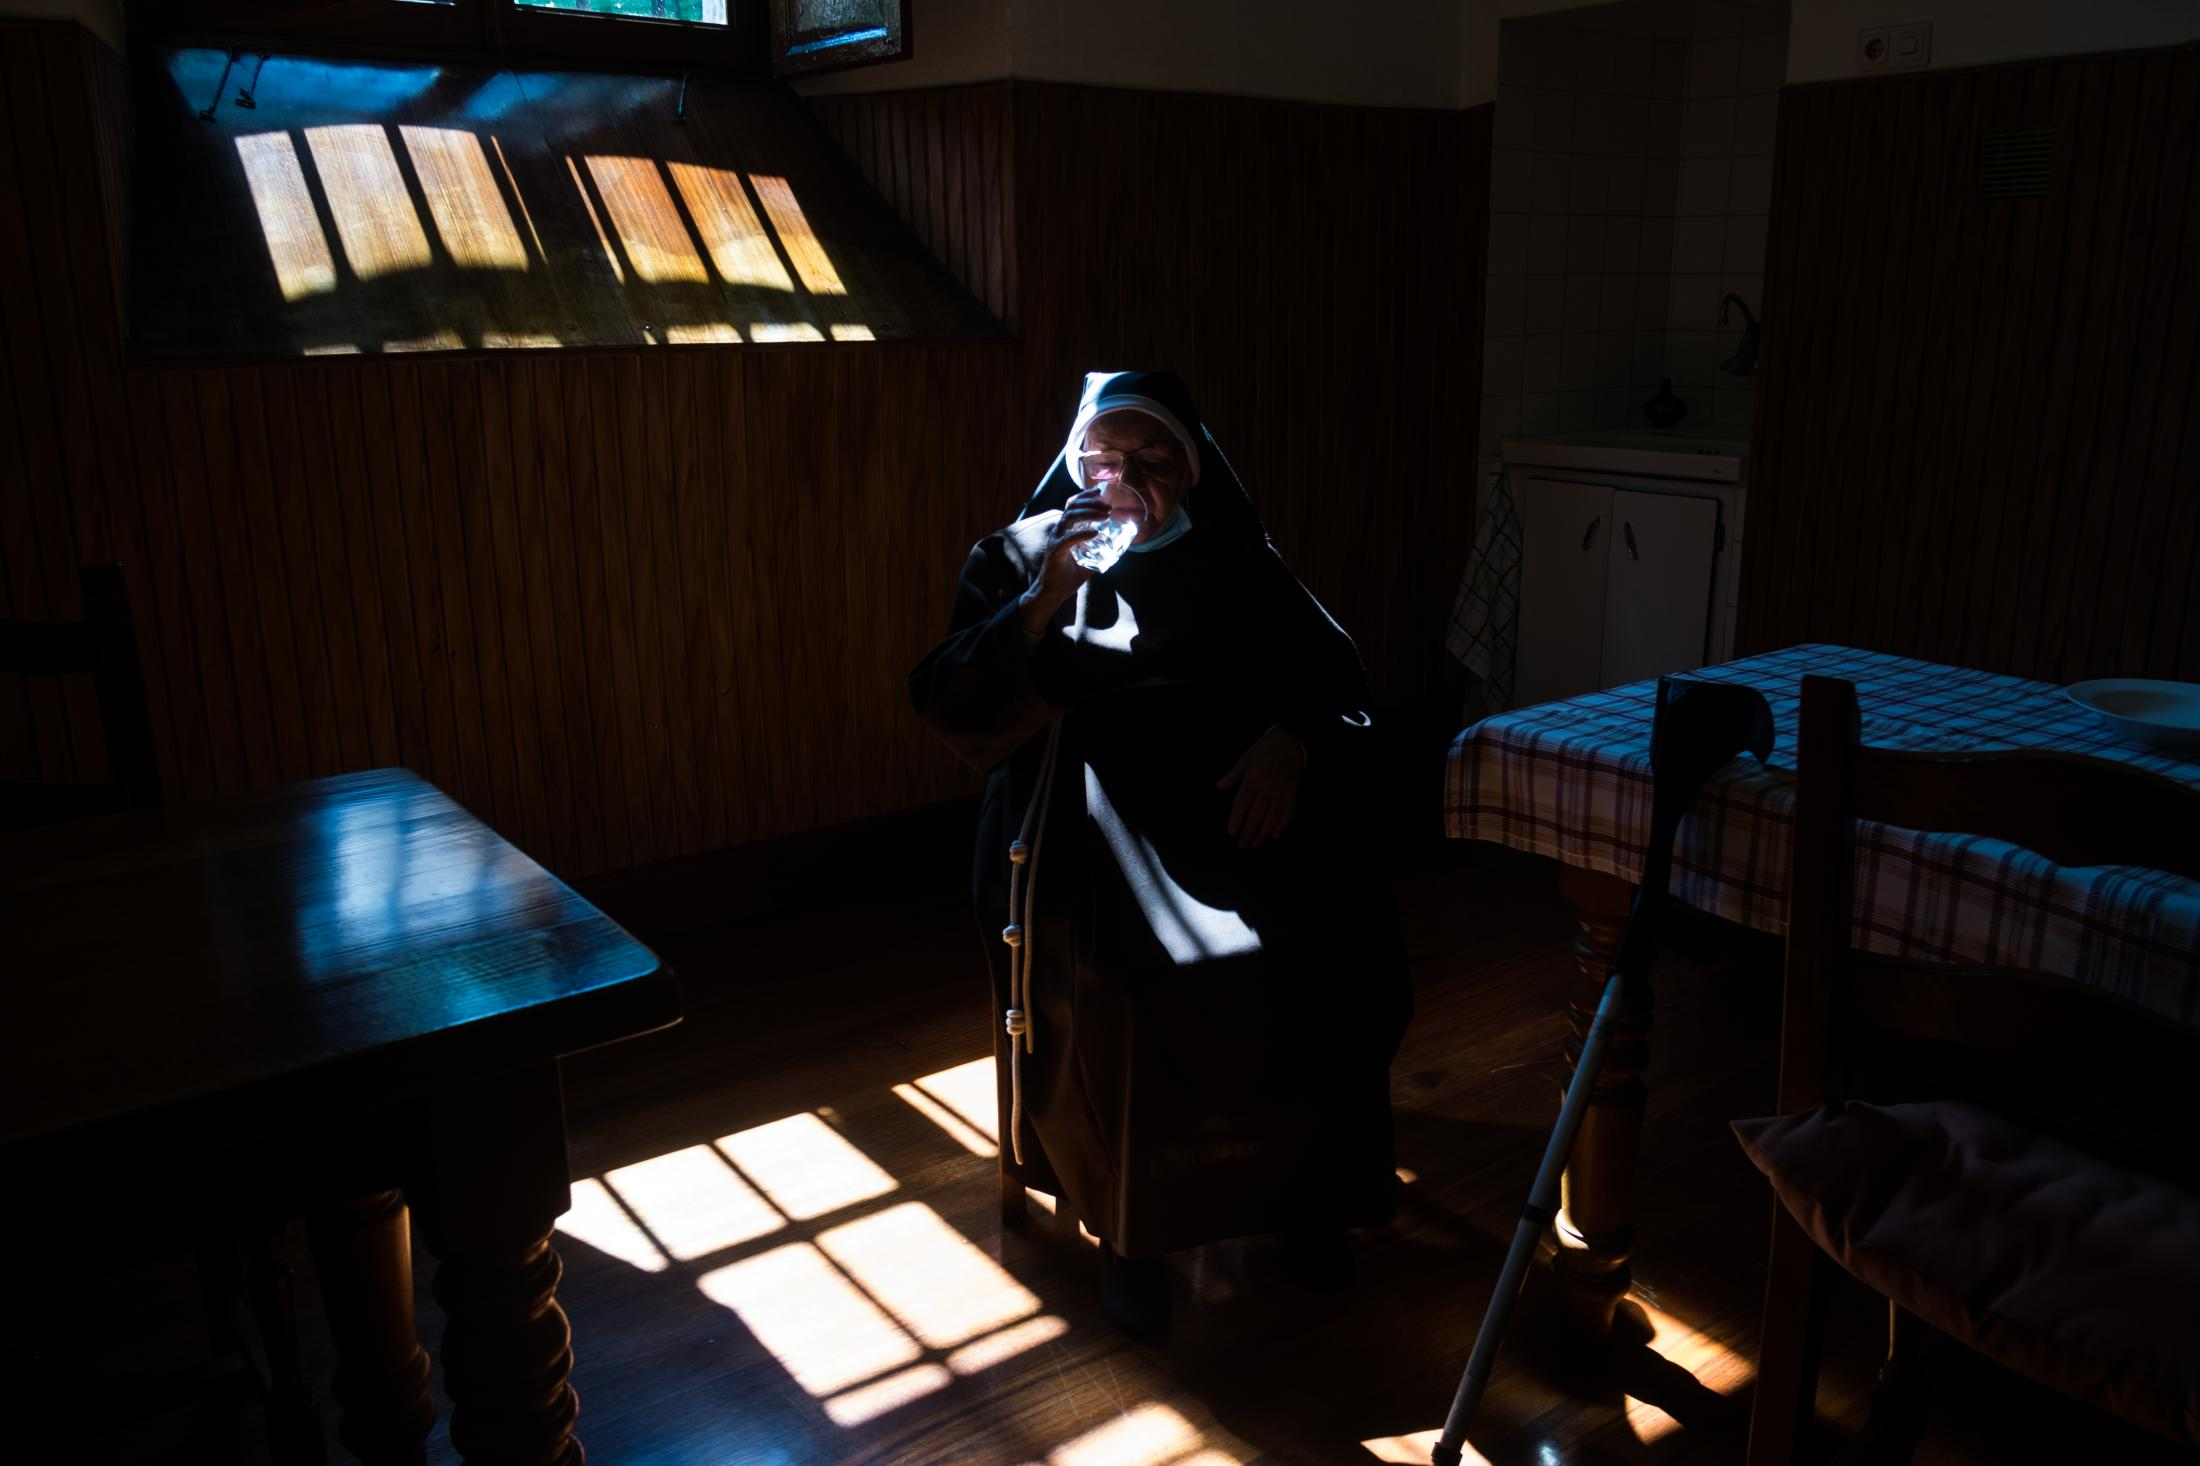 86-year-old Sister María Rosario, Sister Genoveva's older sister, has been living in the monastery of Tolosa for 66 years. Back then, there were 40 nuns, but now only 5 of them are left. In the photograph, drinking a glass of water before having breakfast.